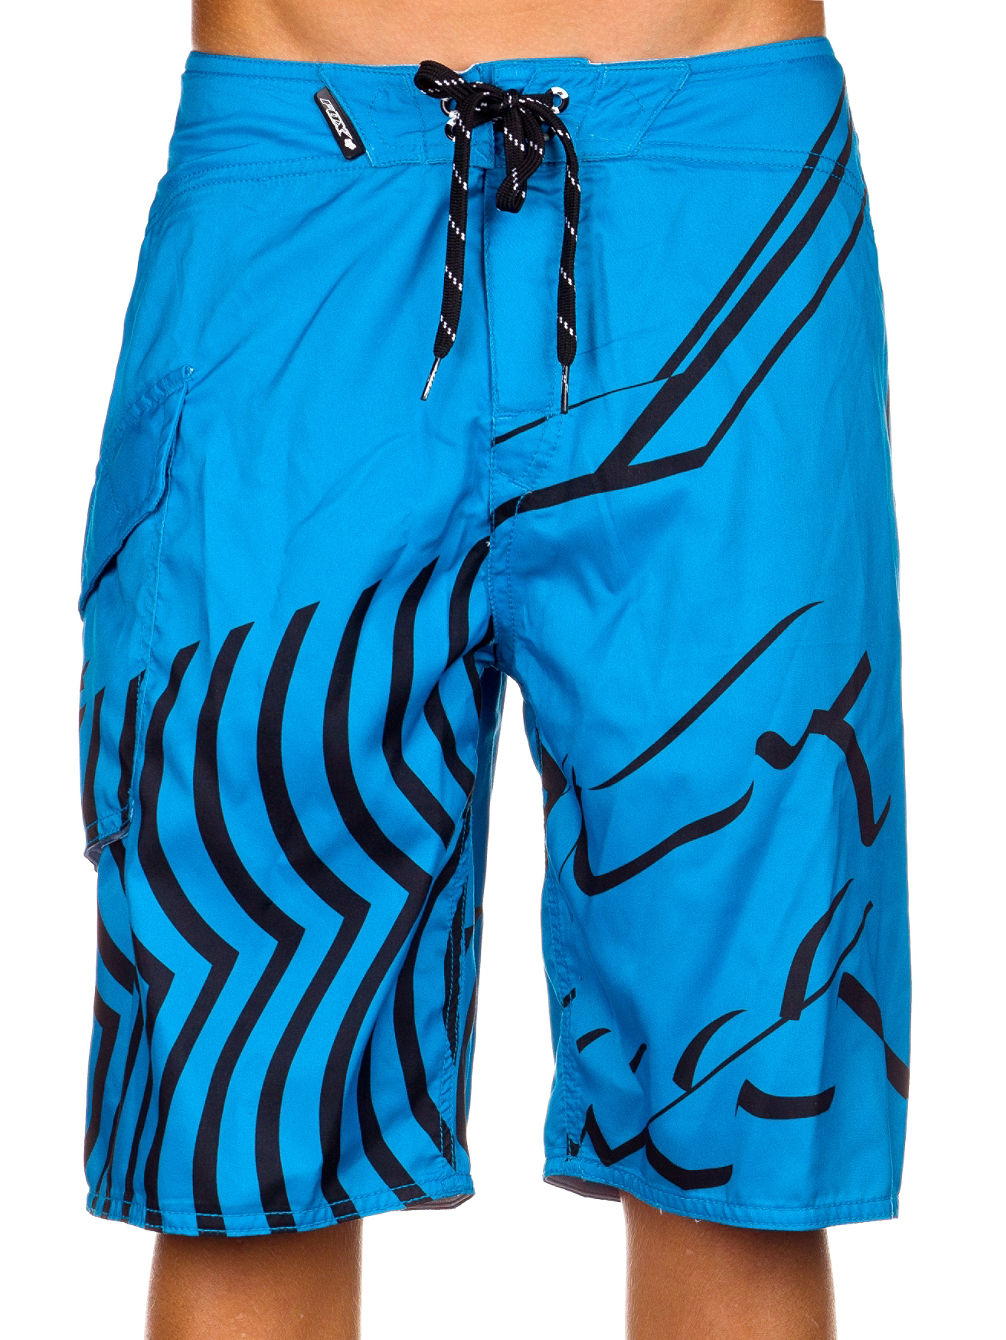 fox-expandamonium-boardshort-youth